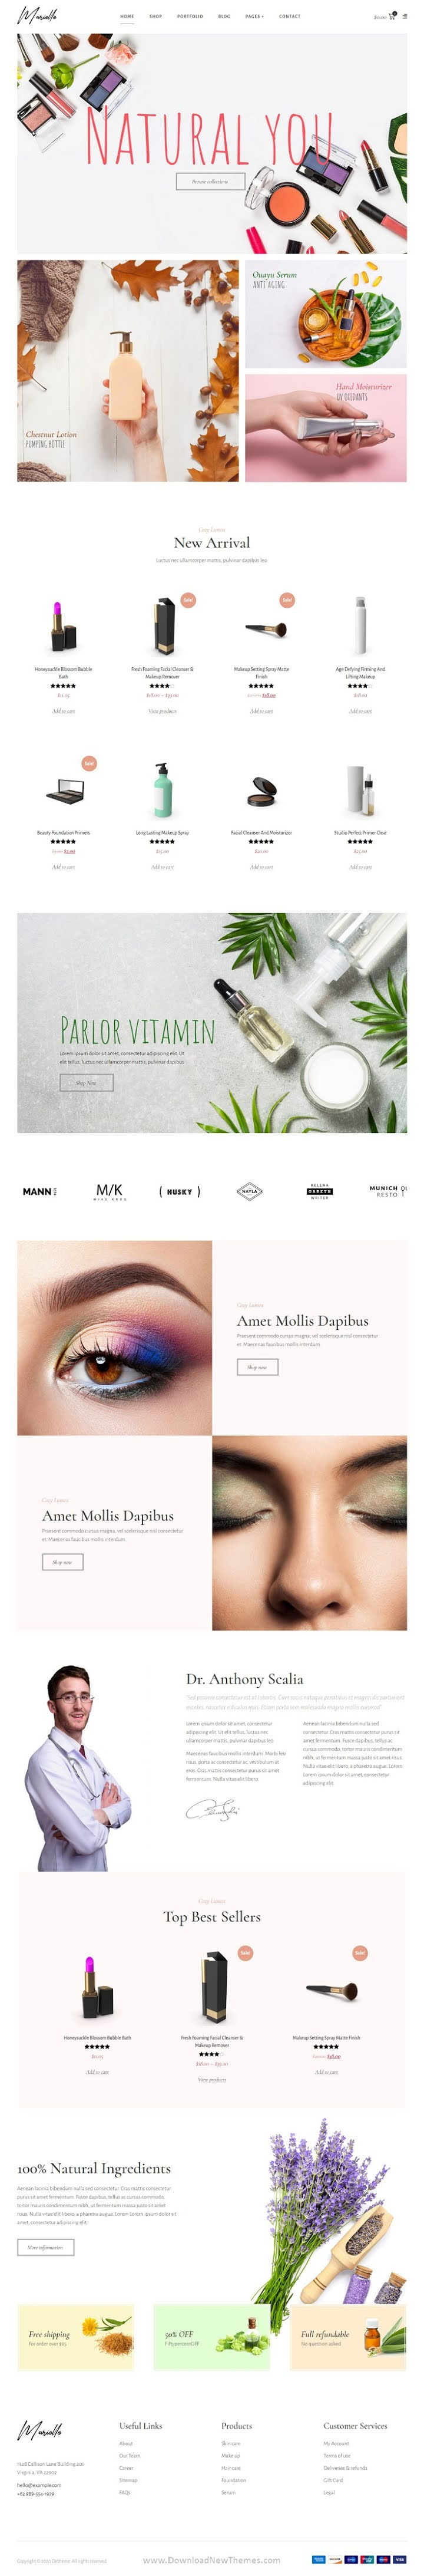 Cosmetics and Beauty Shop Template Kits